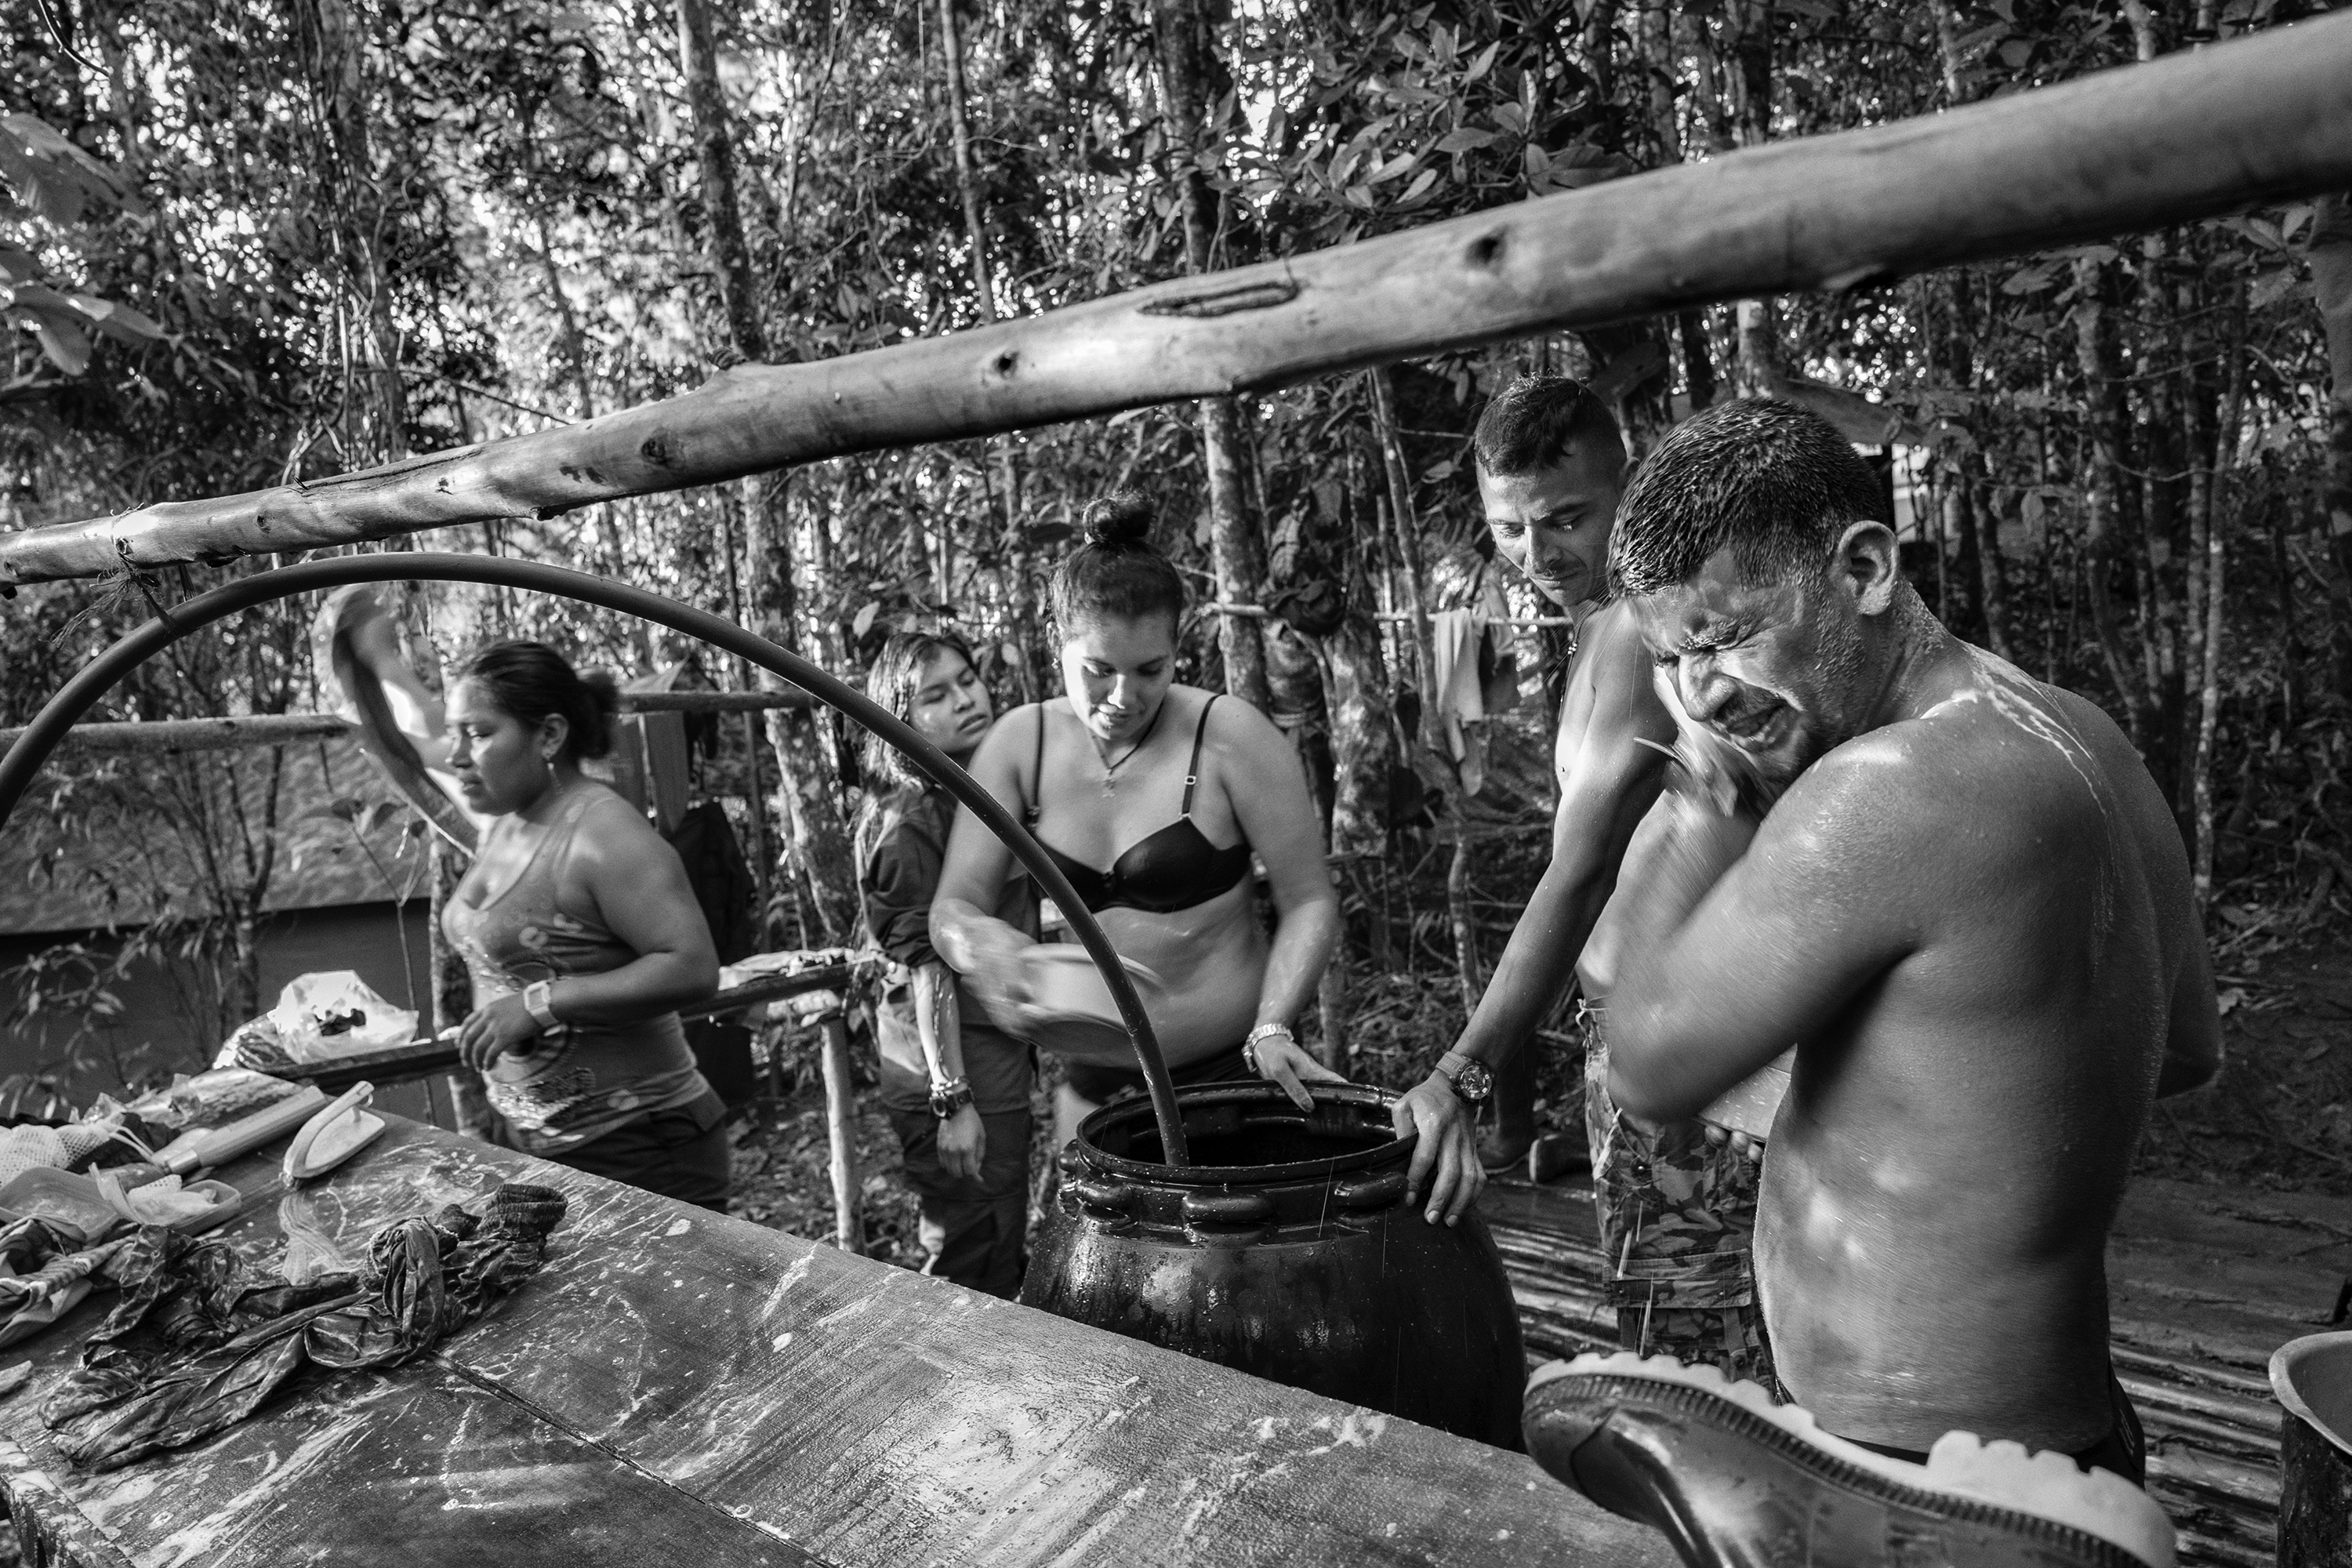 FARC guerrilla members shower at a camp, Cauca, Colombia, July 2016.